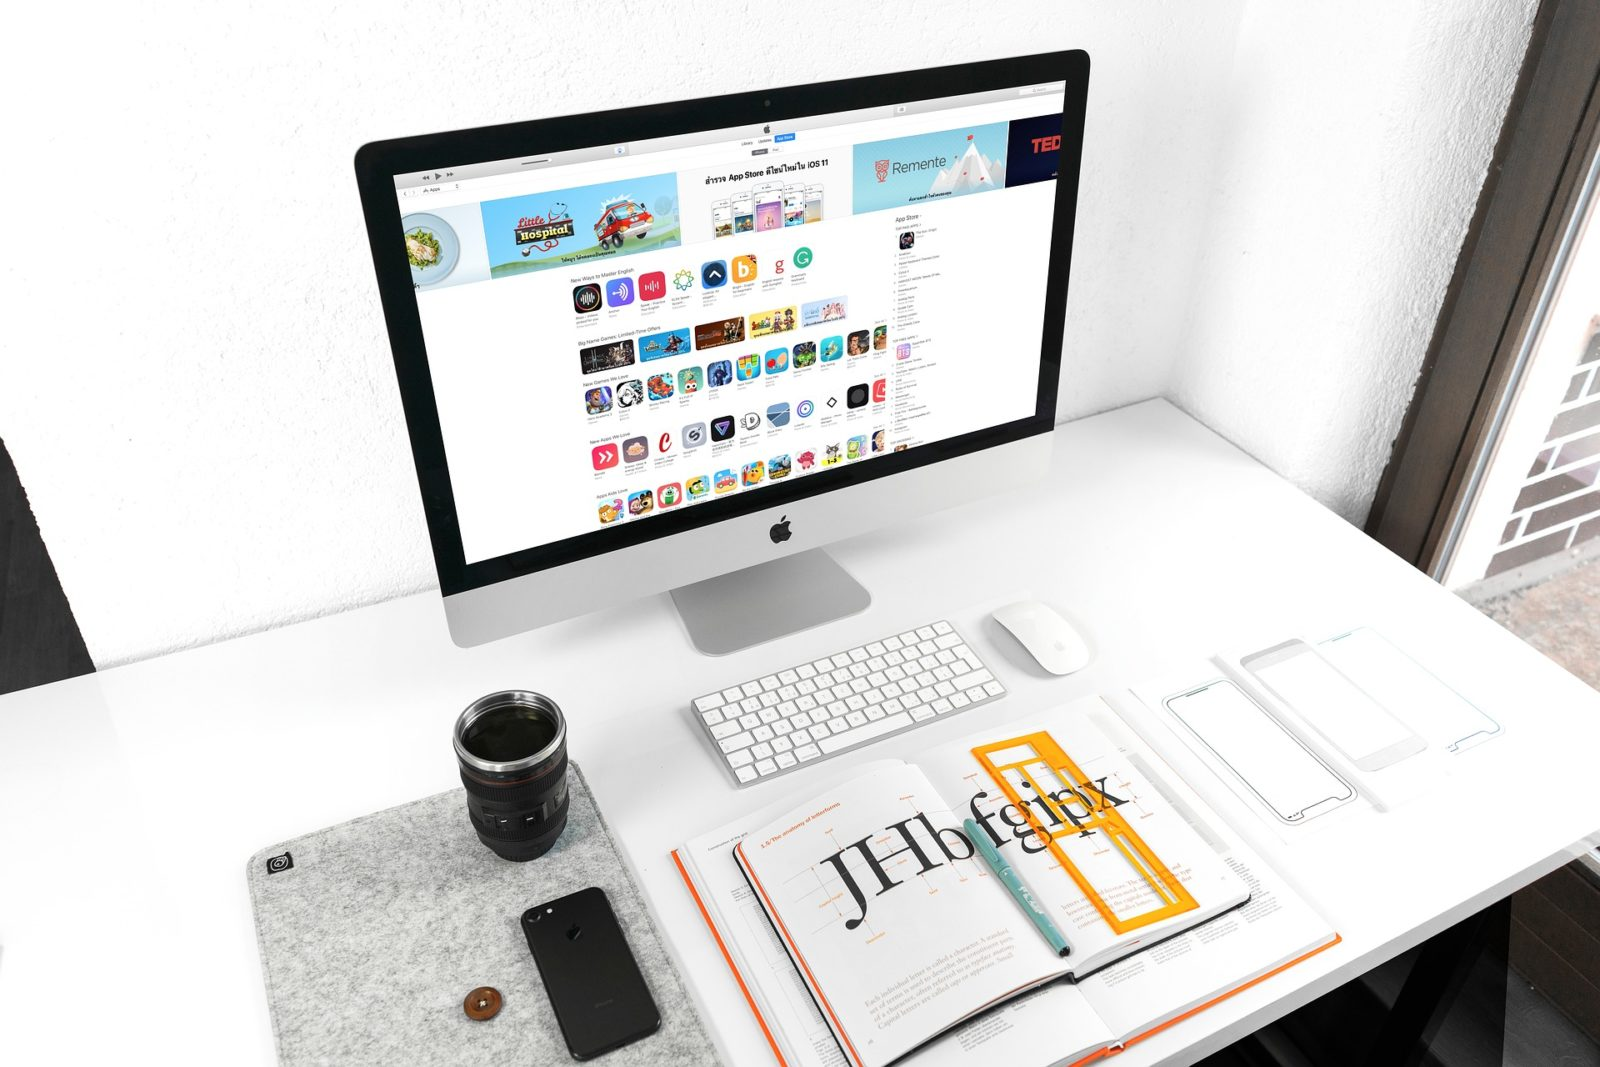 15 Best Graphic Design Apps for Mac